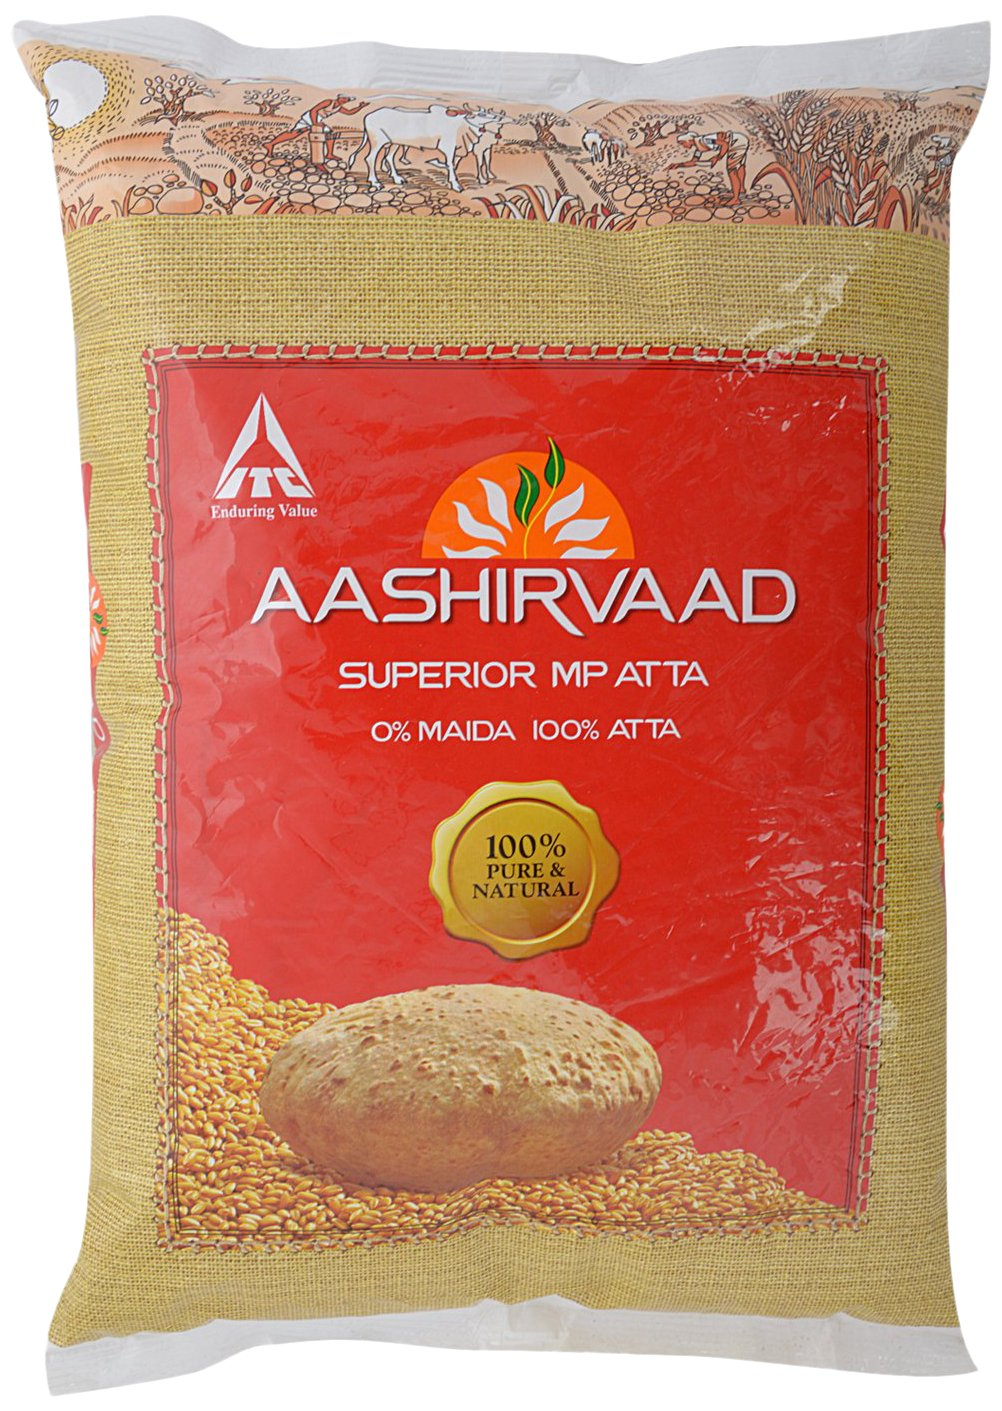 Aashirvaad Superior MP Atta, 5kg By Amazon @ Rs.165